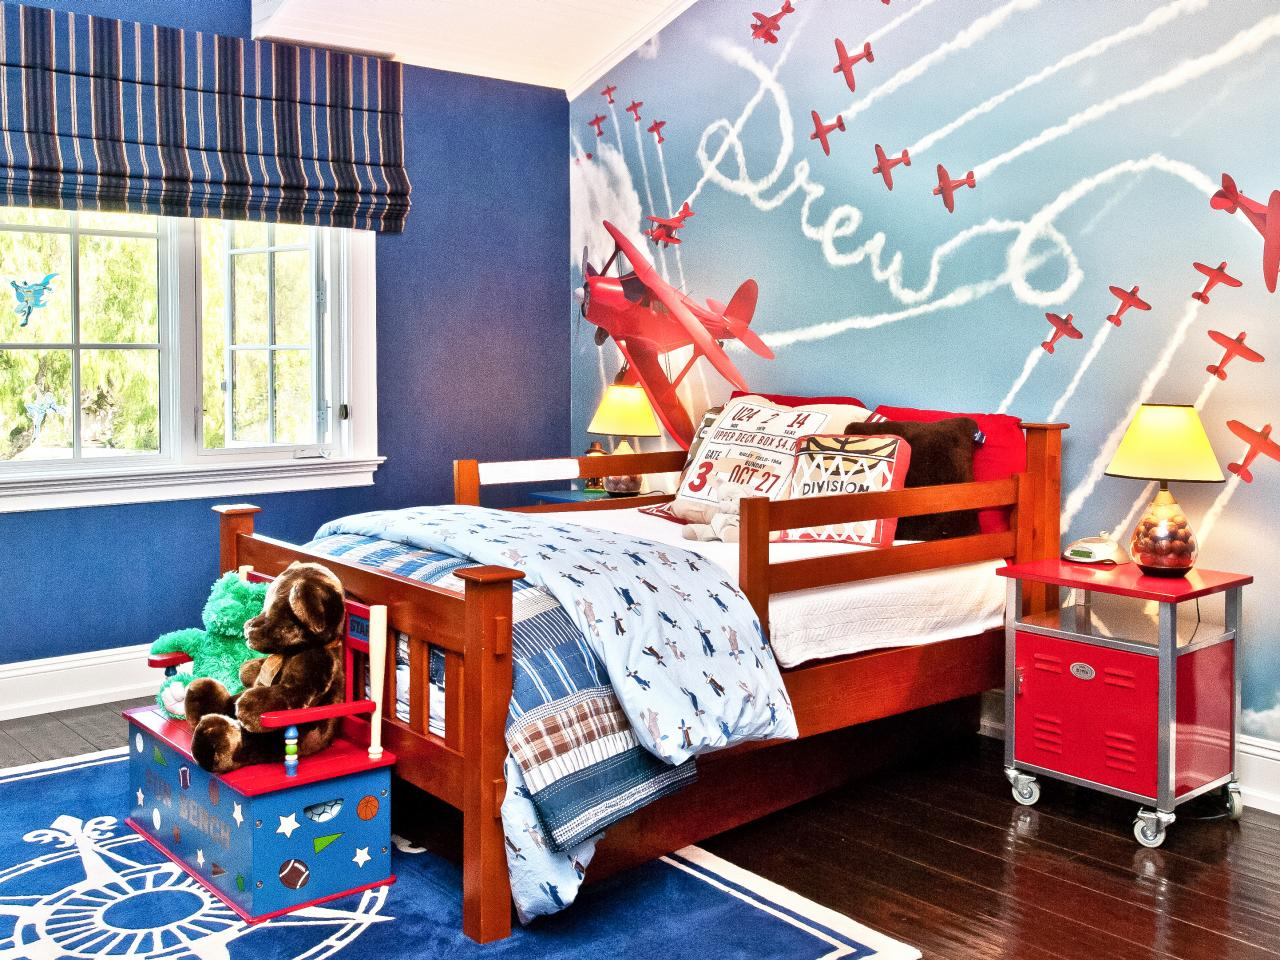 Choosing A Kid's Room Theme